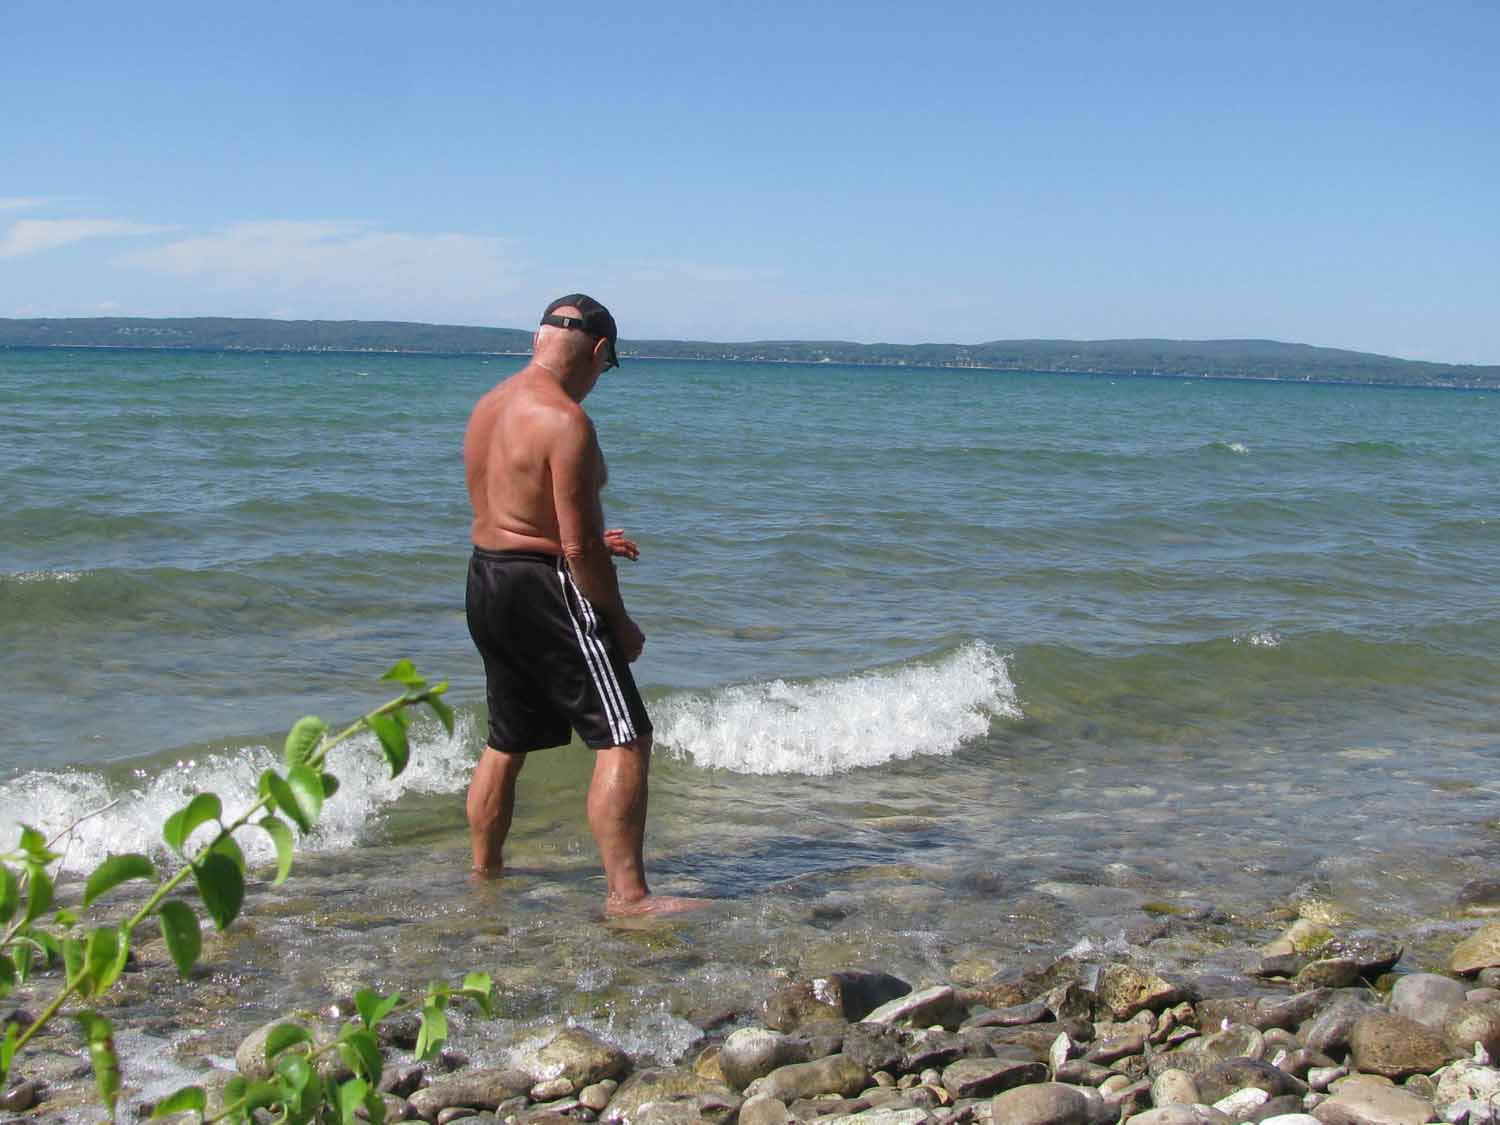 Hunting for Petoskey Stone in Little Traverse Bay